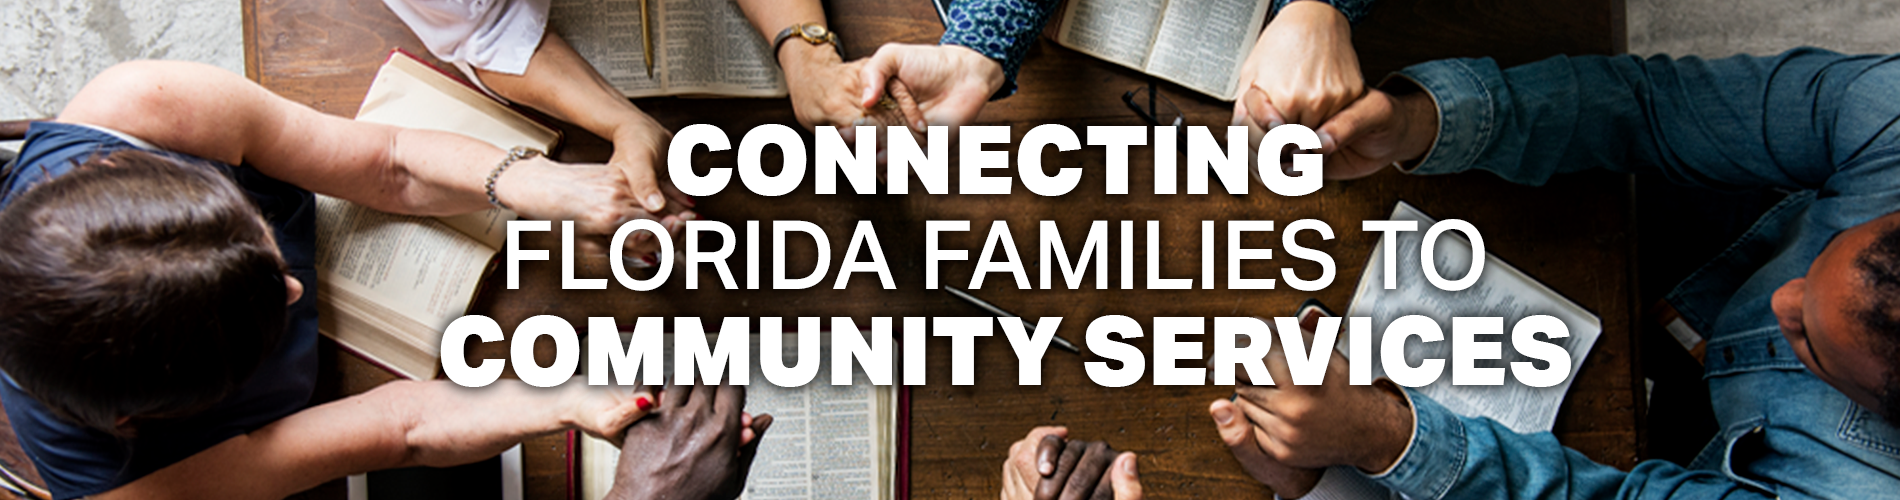 Connecting Florida Families to Community Services.  Image of group praying